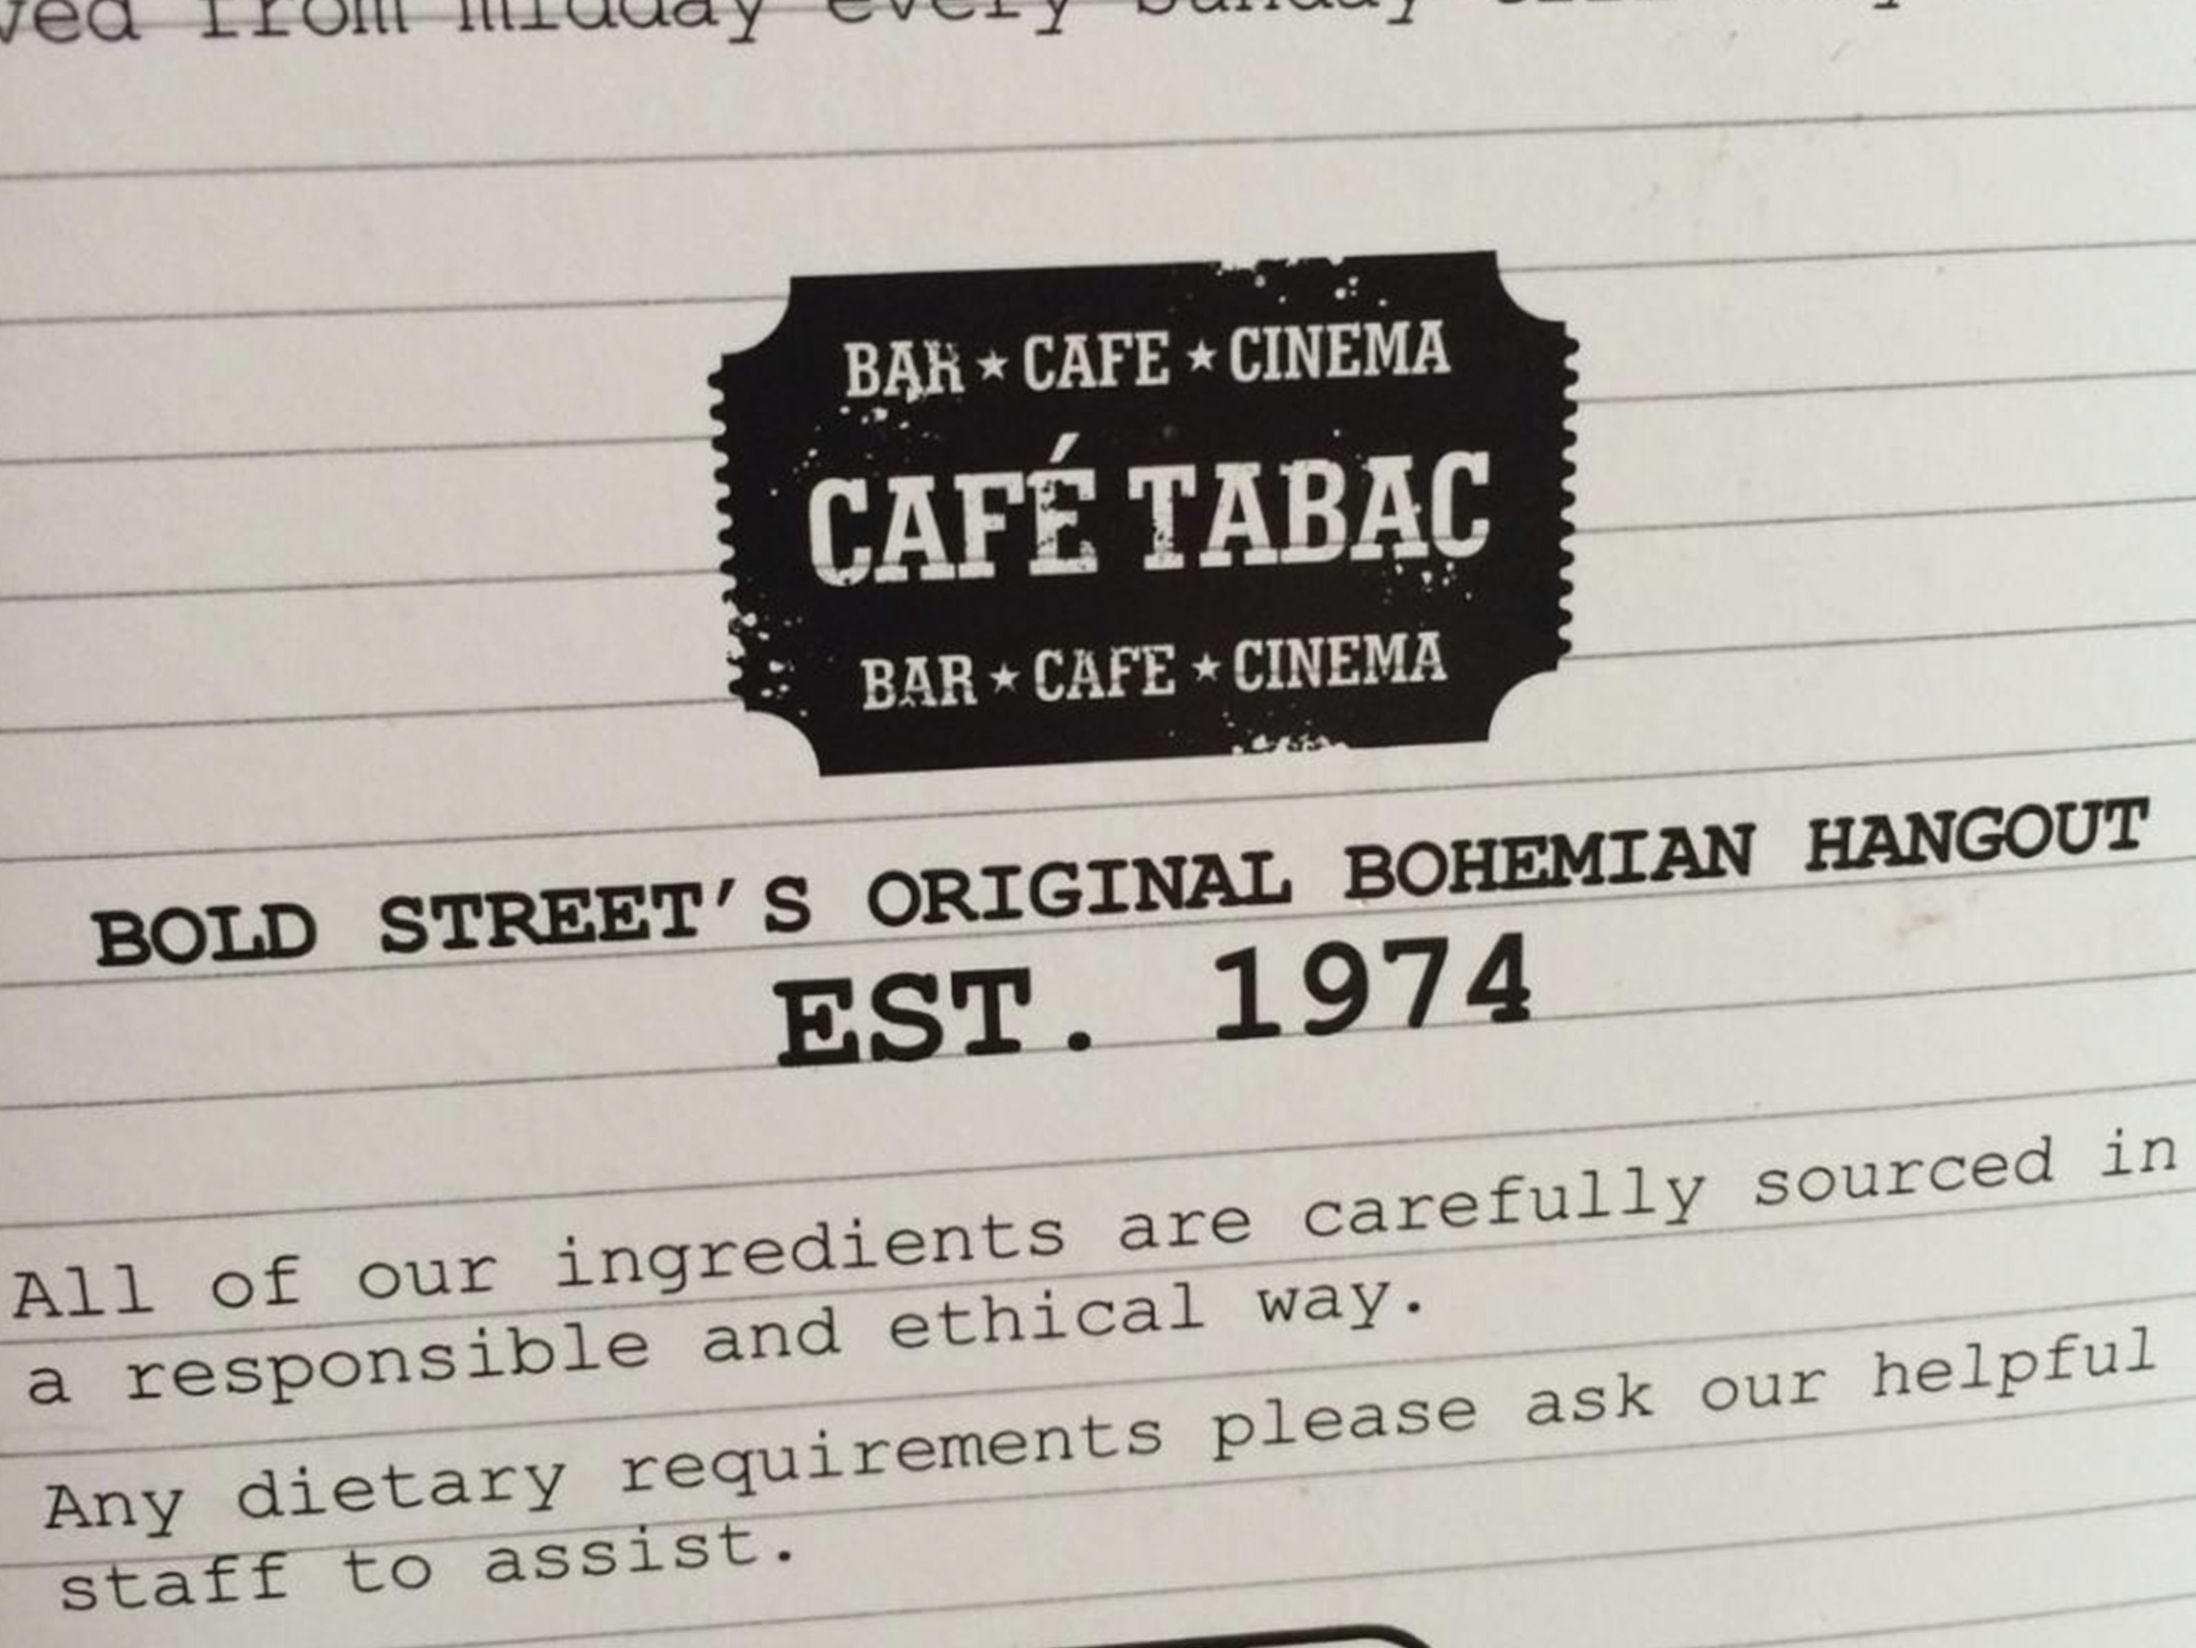 Best Breakfast in Liverpool - Cafe Tabac